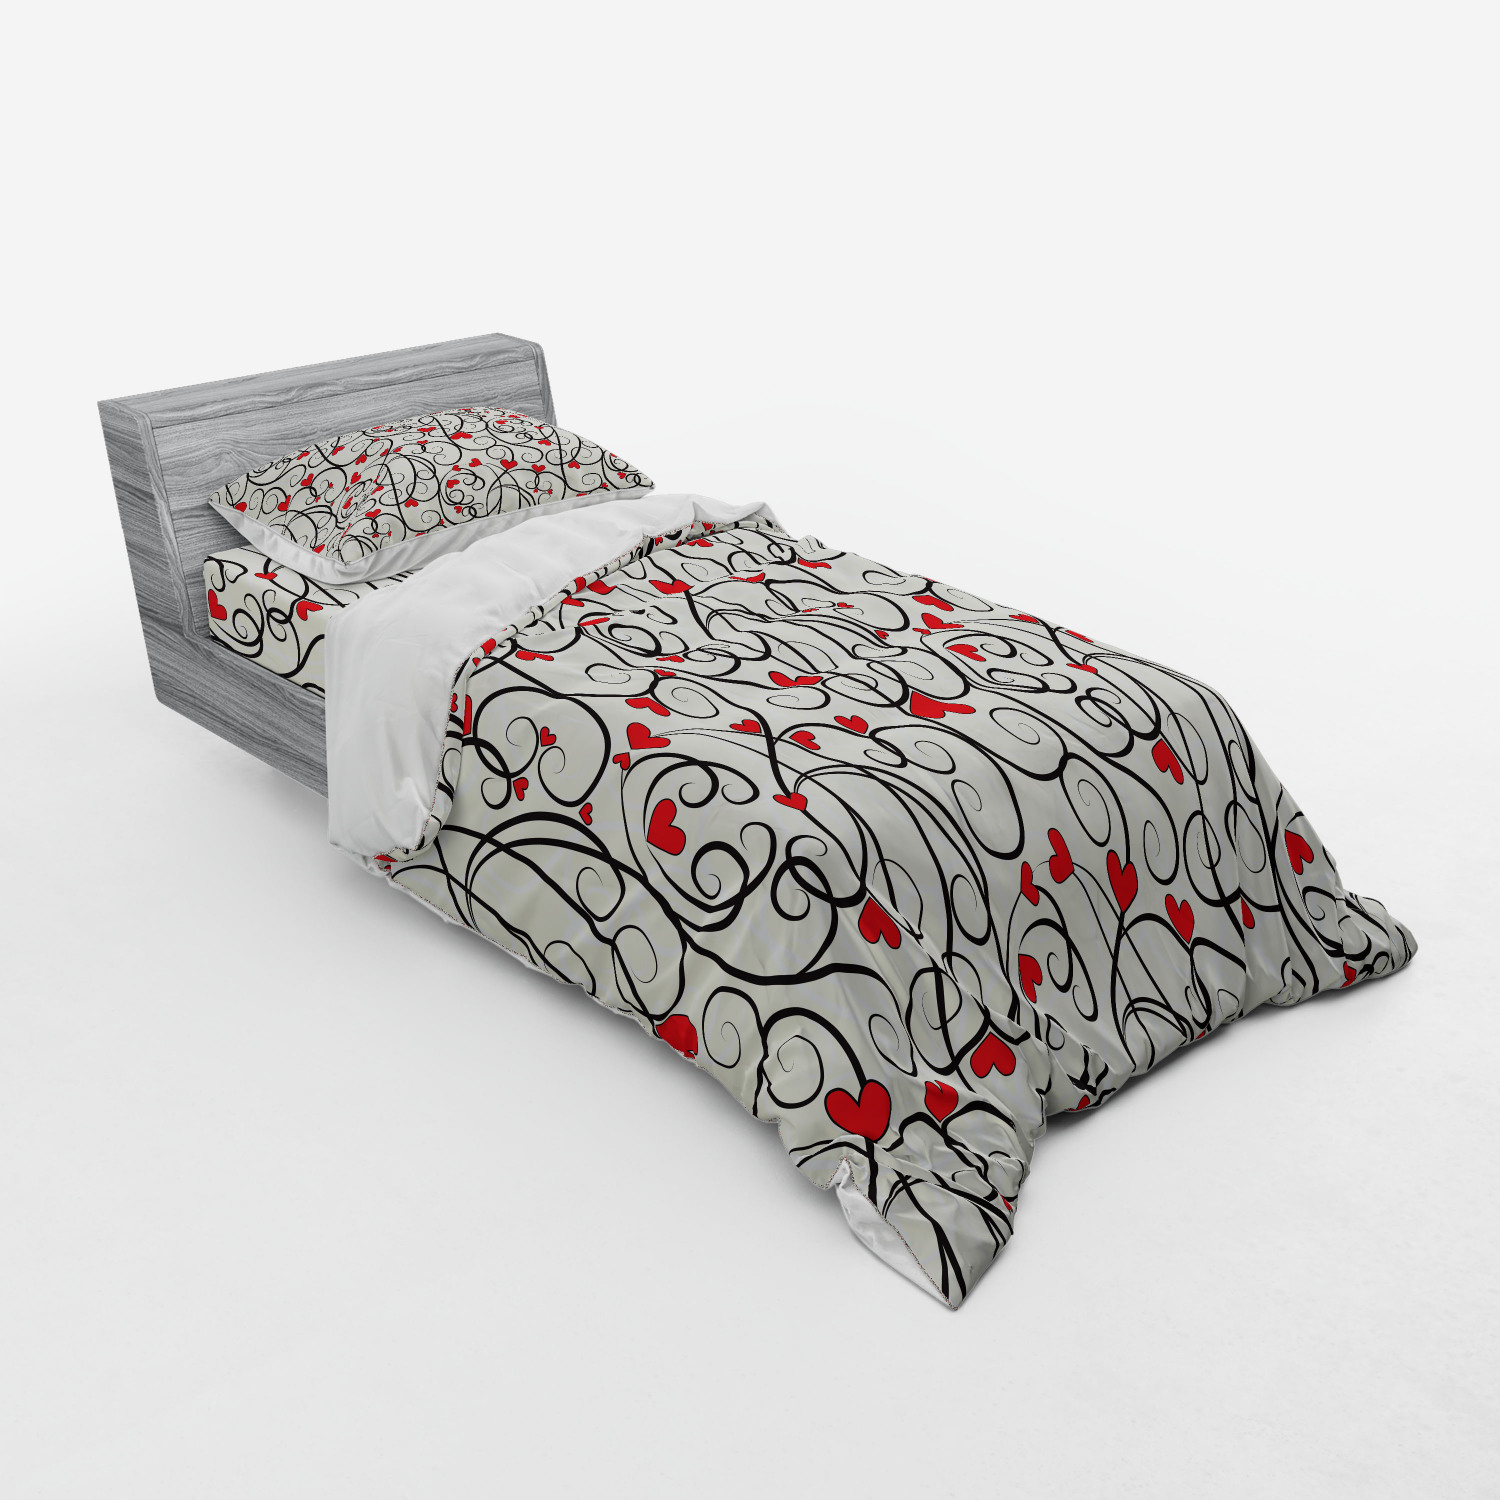 thumbnail 225 - Ambesonne Summer Bedding Set Duvet Cover Sham Fitted Sheet in 3 Sizes